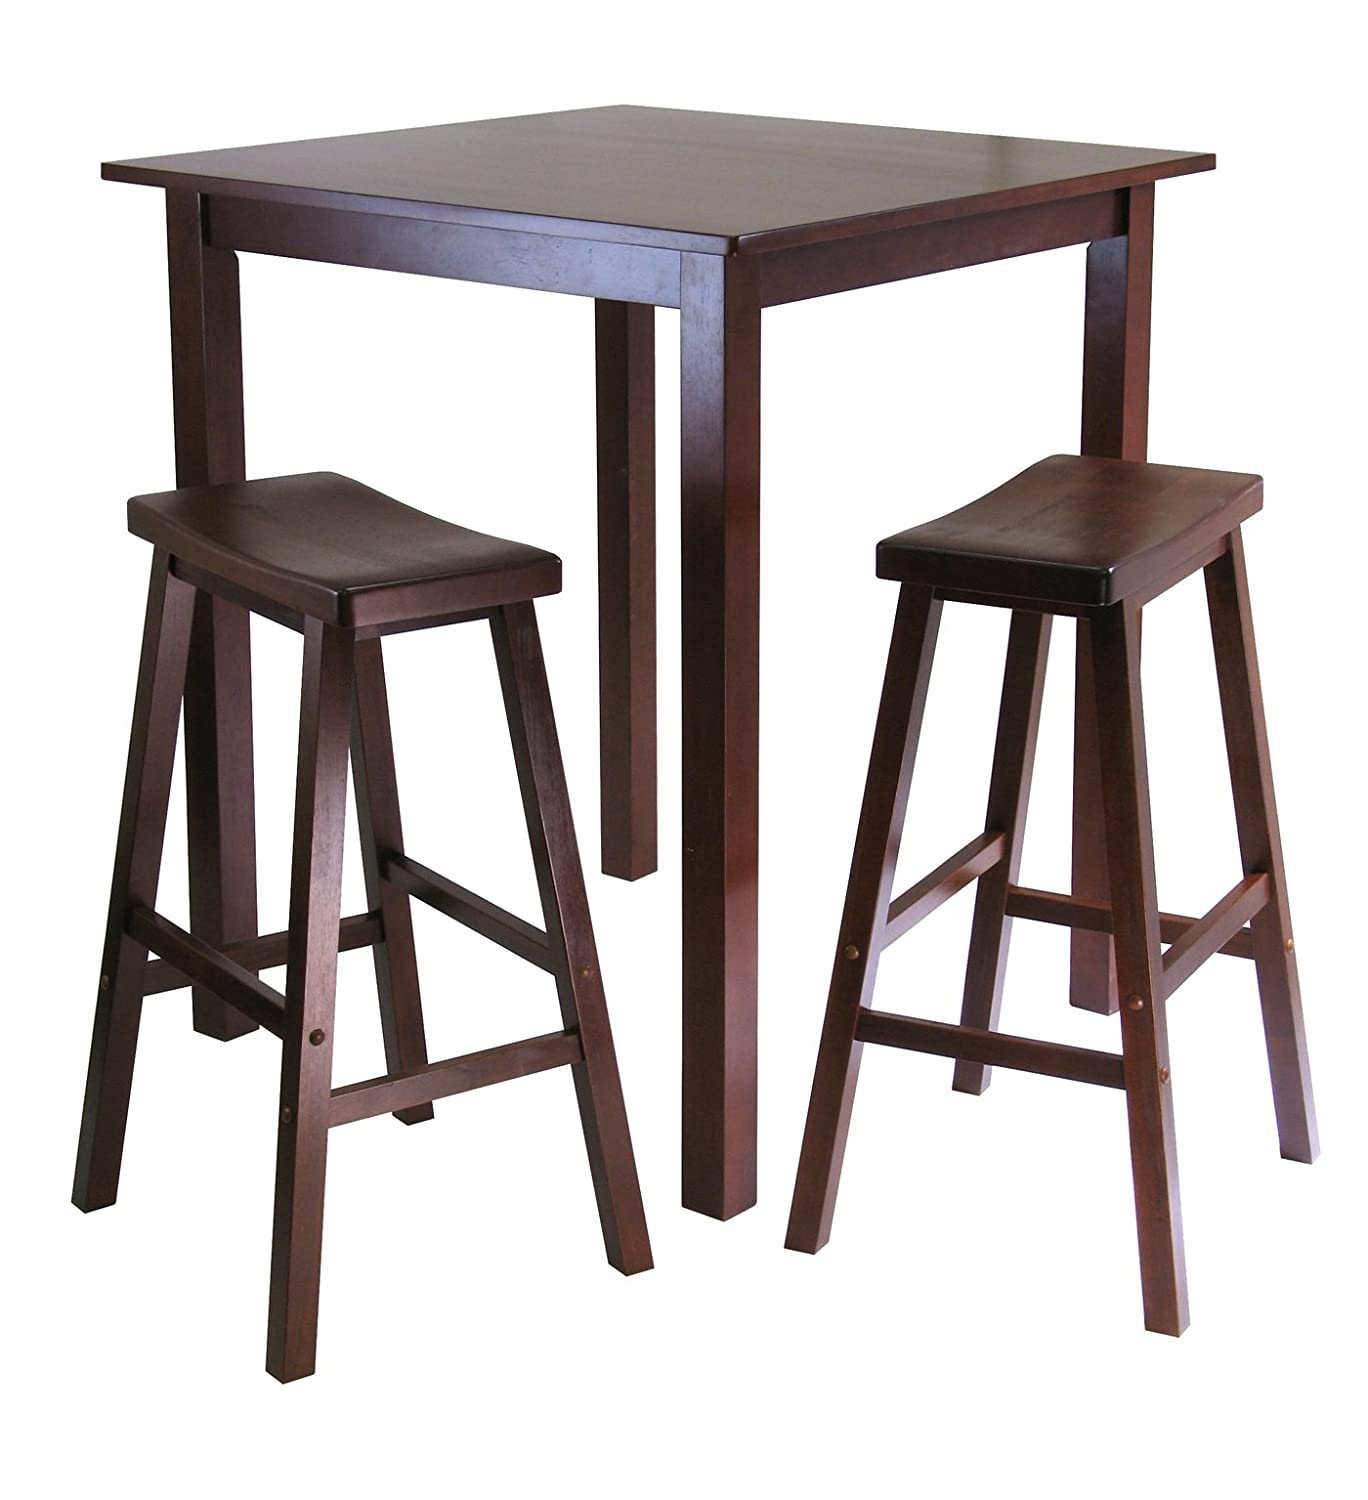 Amazon.com: Winsomeu0027s Parkland 3 Piece Square High/Pub Table Set In Antique  Walnut Finish: Kitchen U0026 Dining